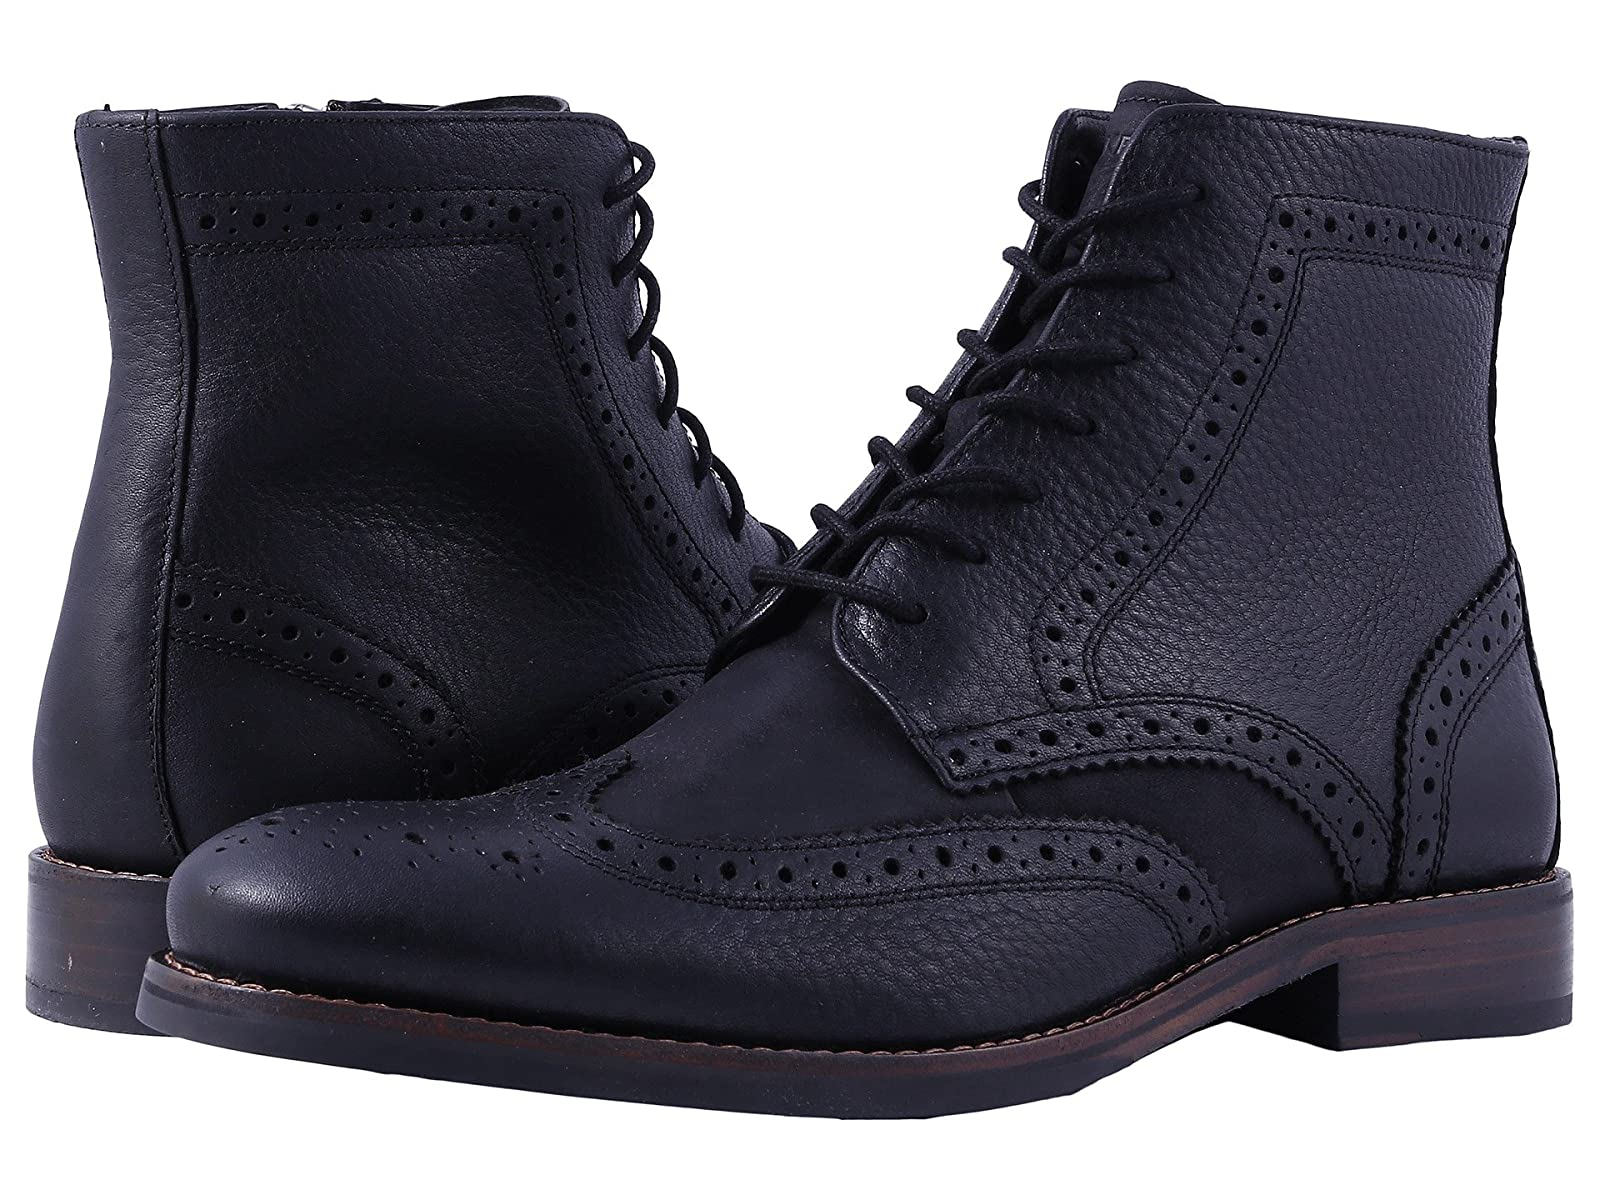 Rockport Wyat Wingtip BootCheap and distinctive eye-catching shoes